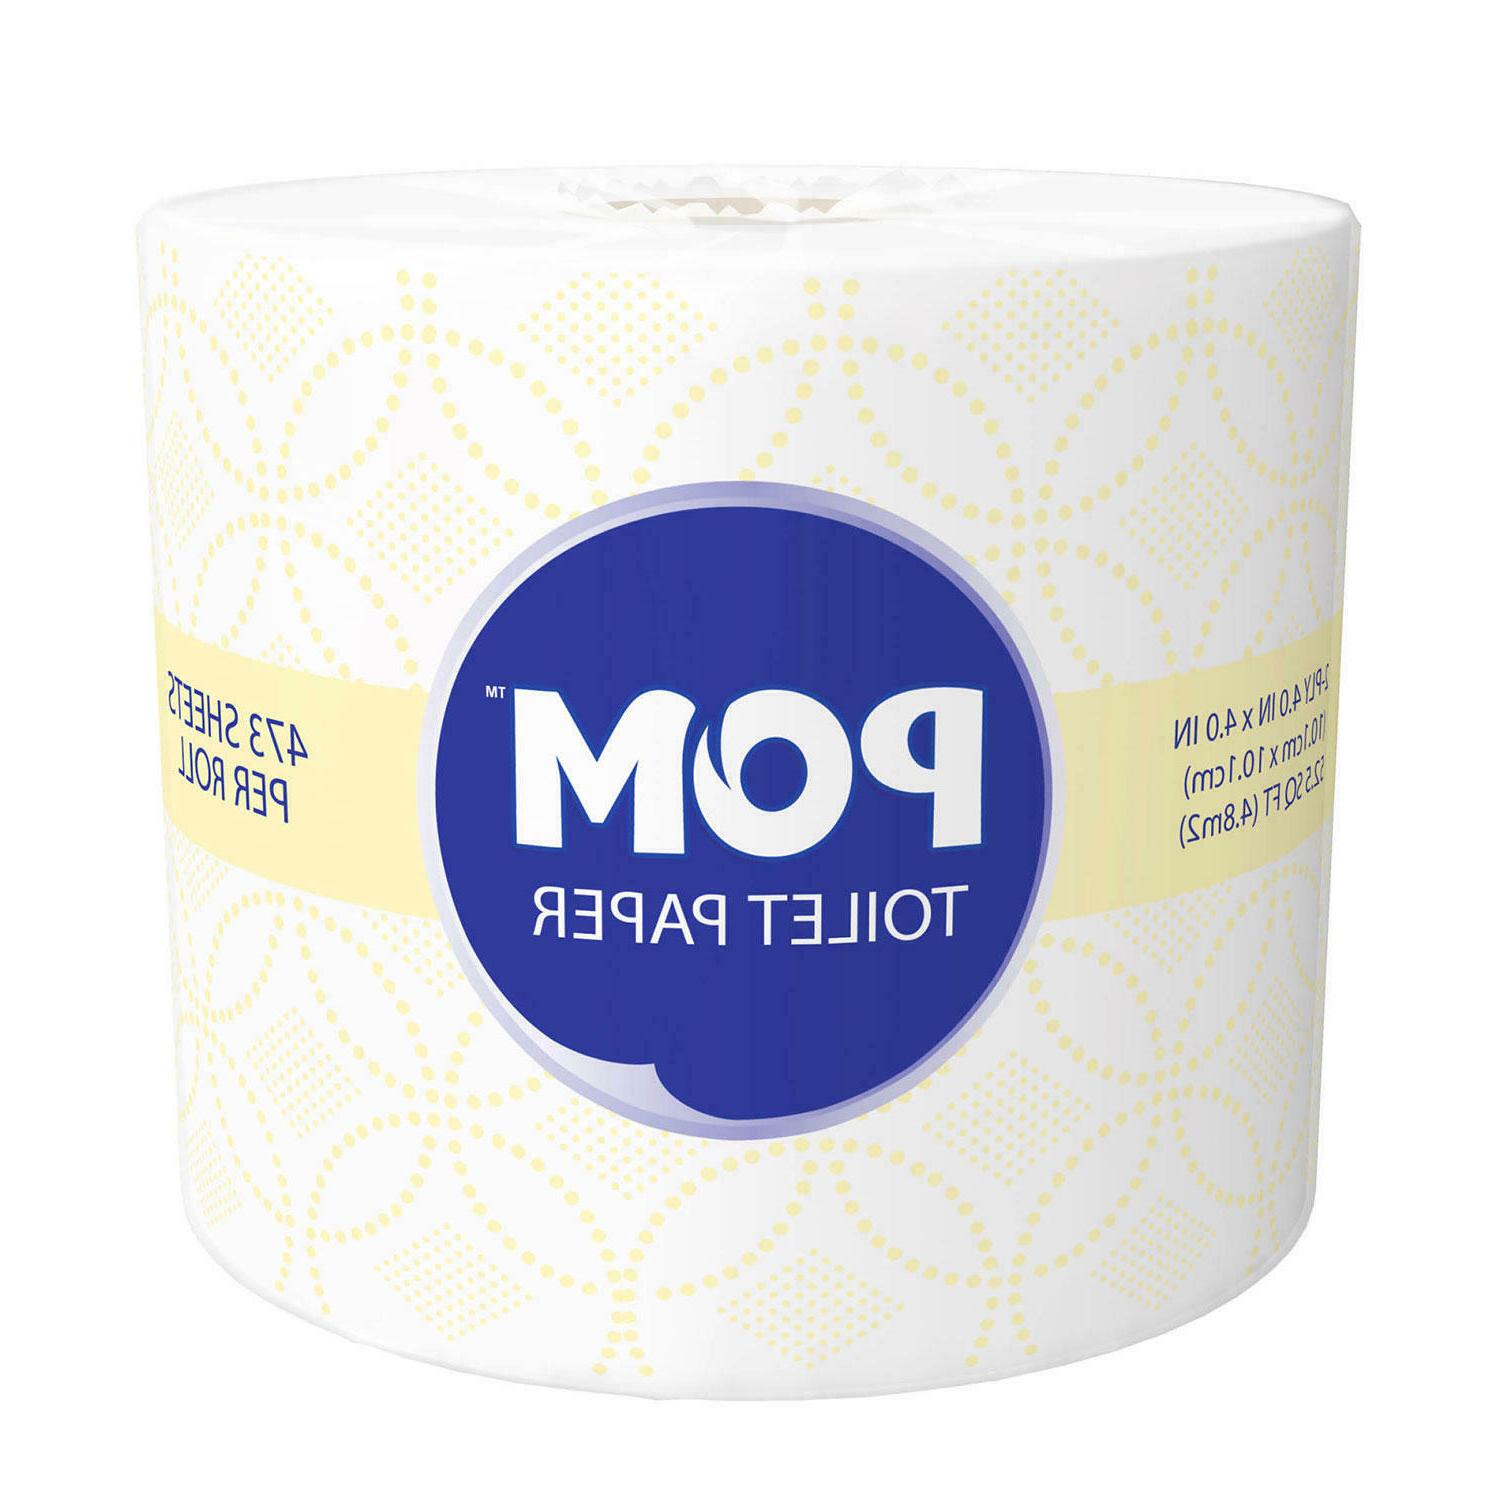 POM 2-Ply Paper, 473 Sheets/Roll